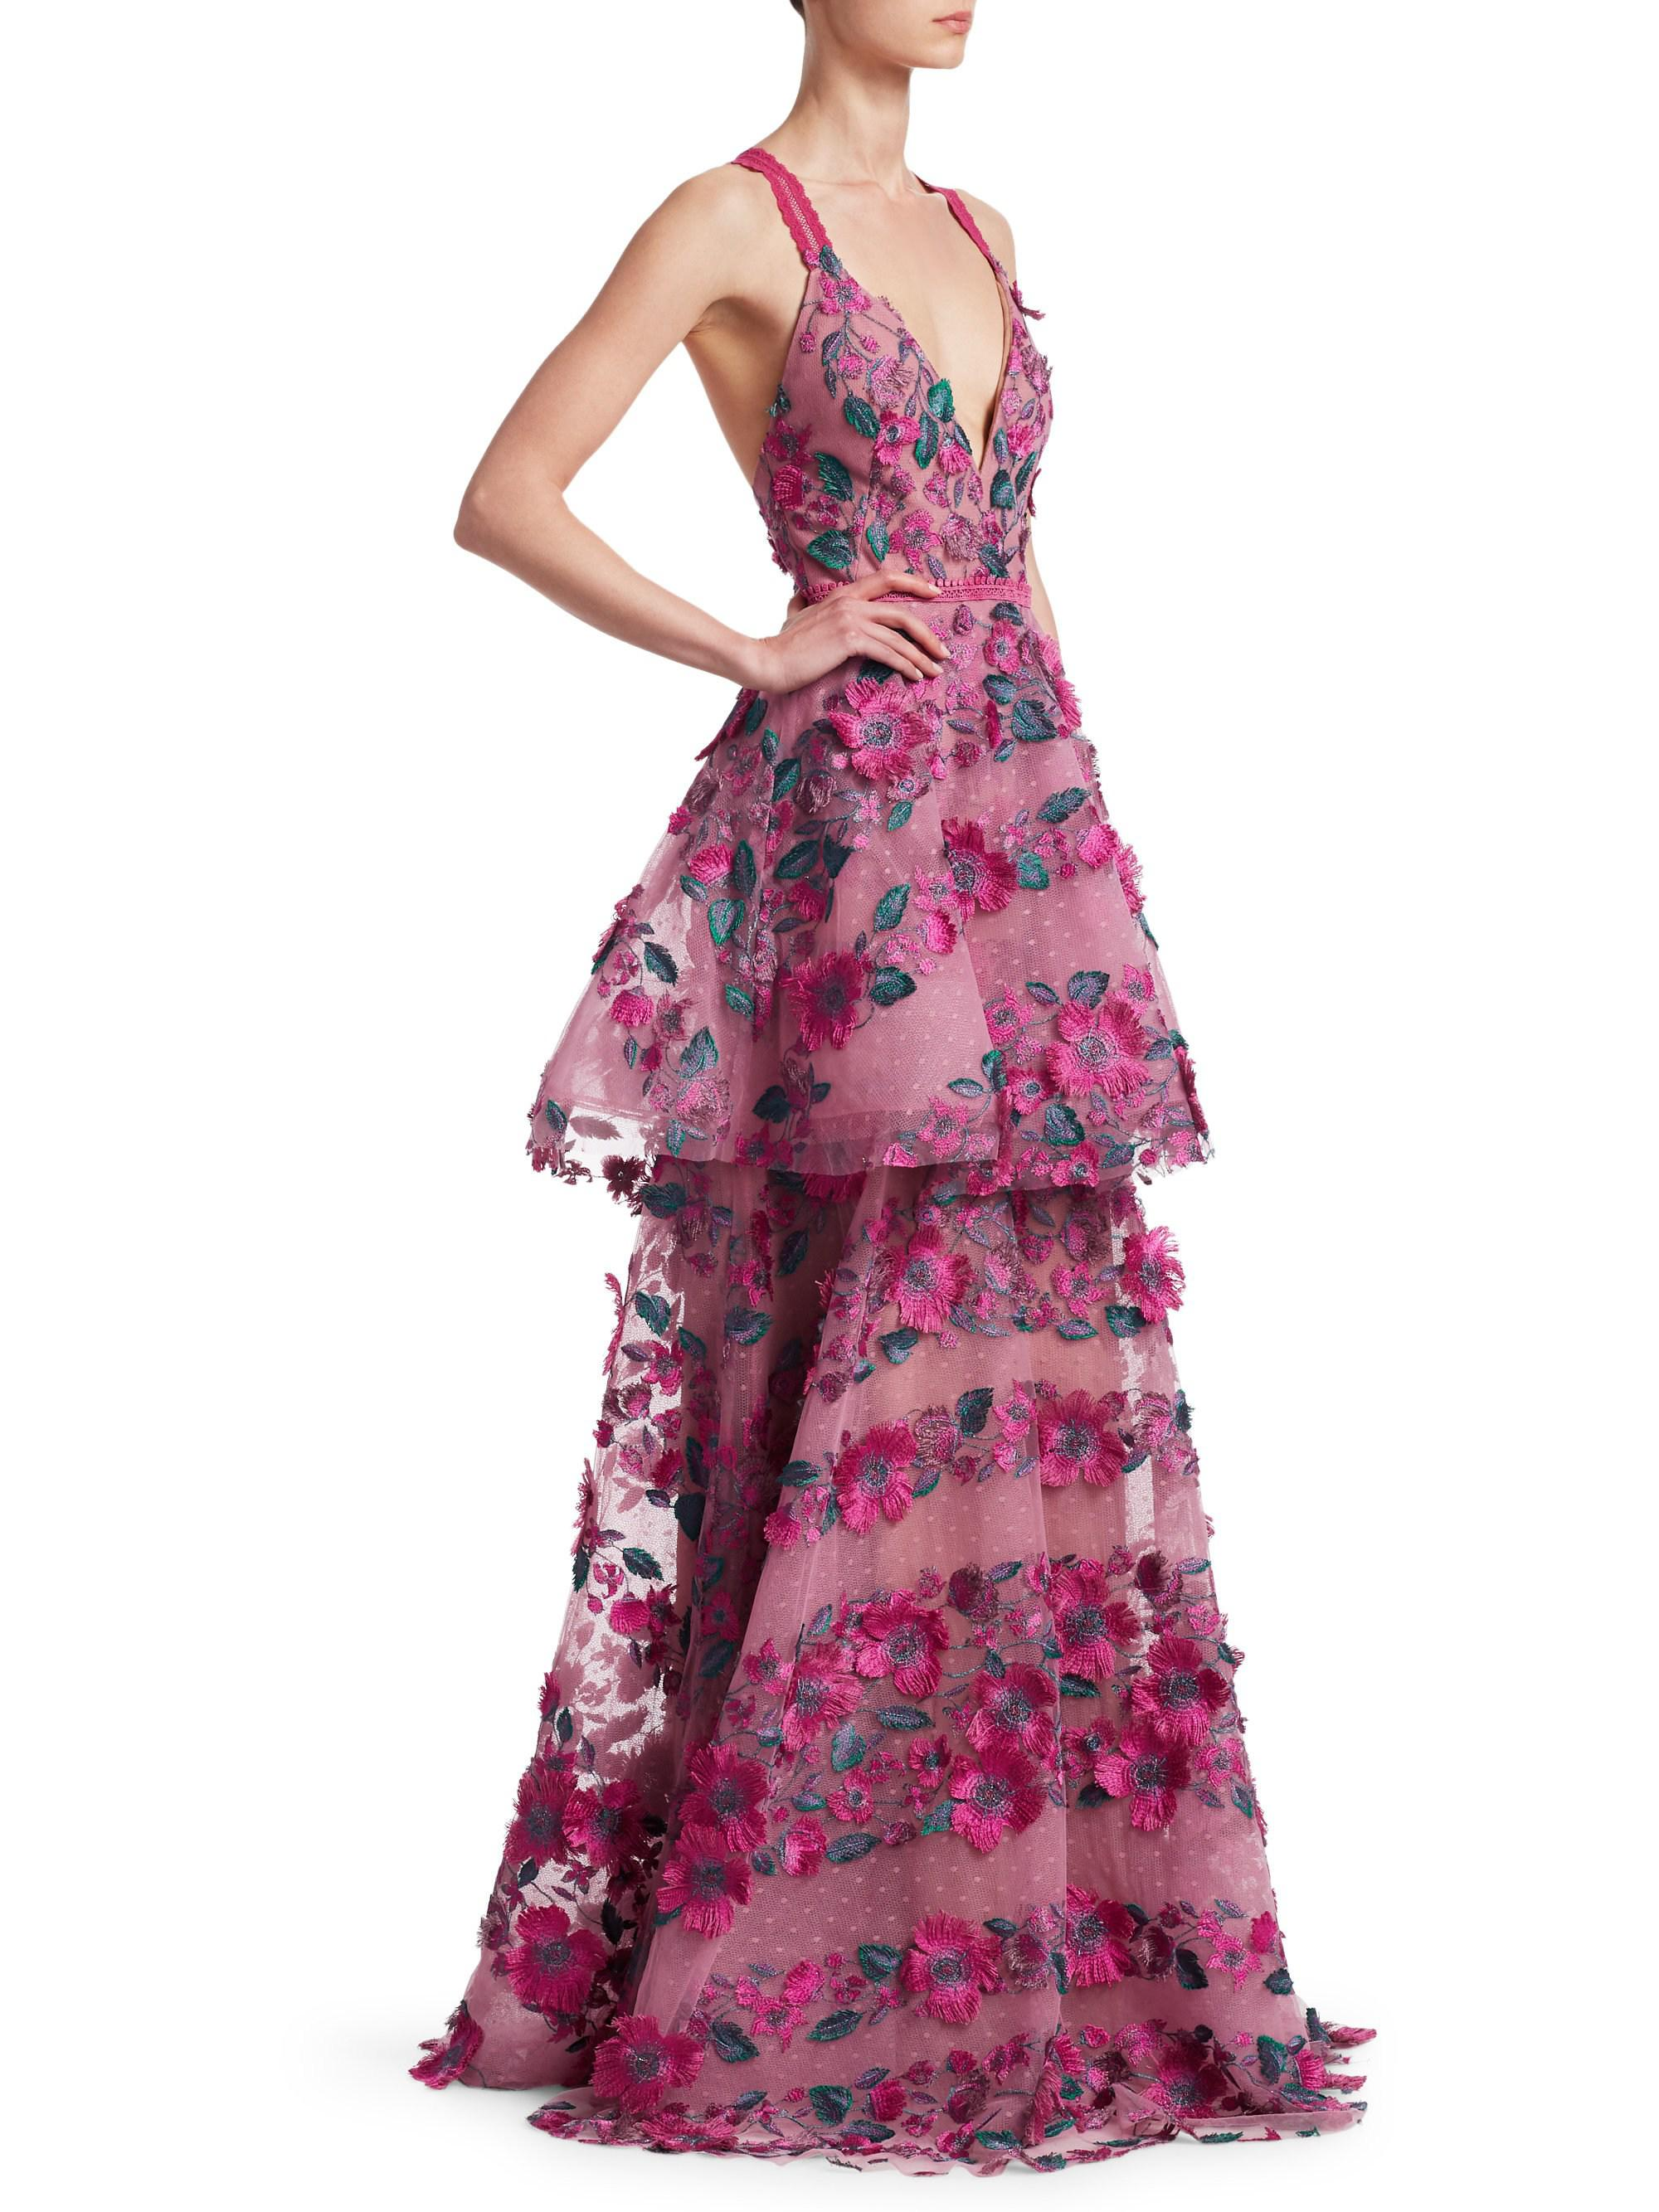 53f1f8c5 Marchesa notte Floral Embroidered Tiered Mesh Gown in Pink - Lyst